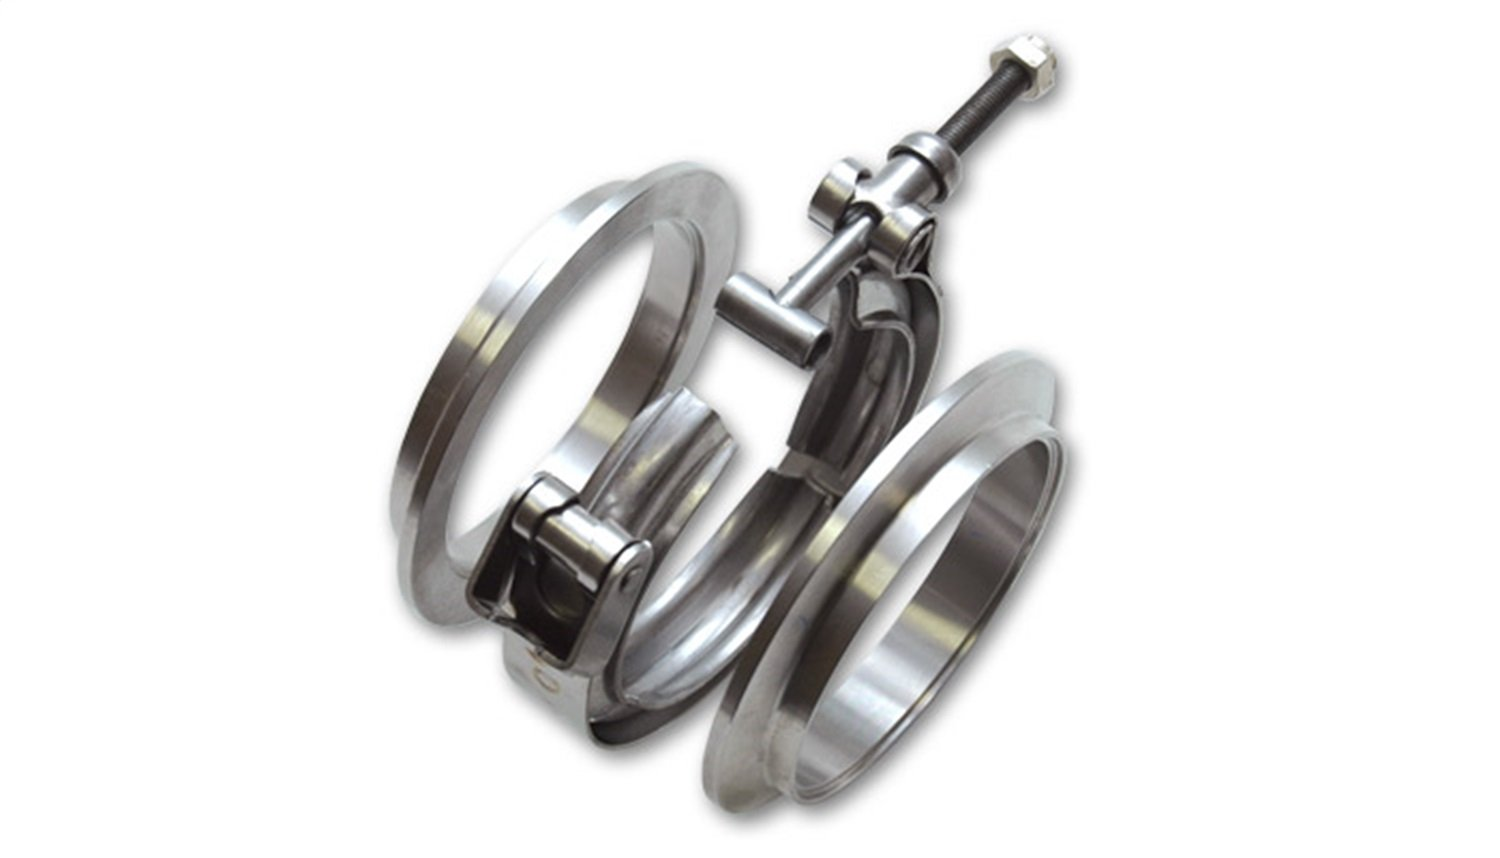 Vibrant 1496 Stainless Steel V-Band Flange Assembly for 2.75'' O.D. Tubing by Vibrant Performance (Image #1)